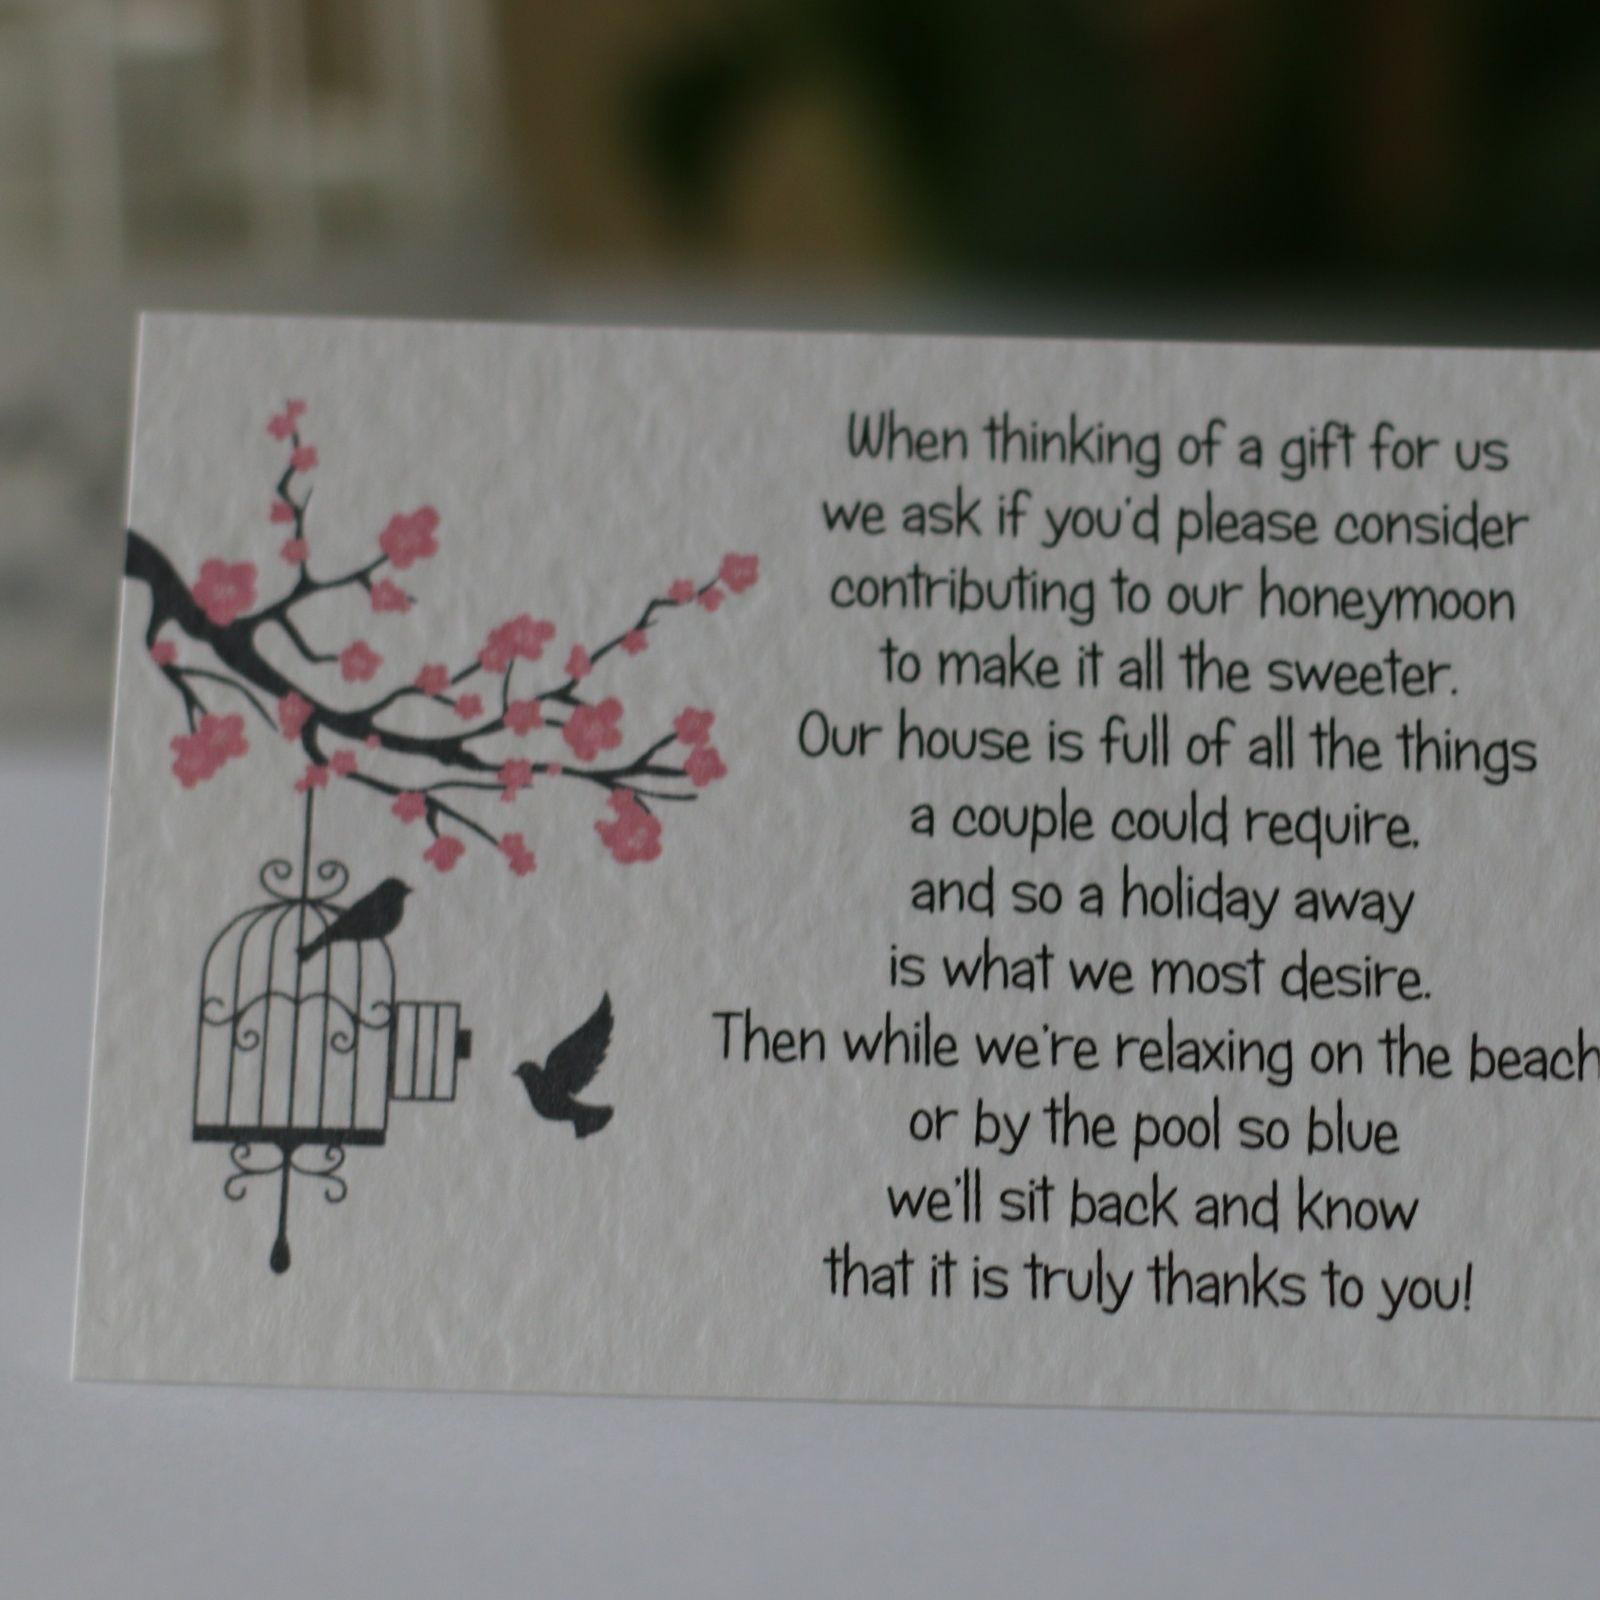 Blossom Wedding Gift Poem Cards money cash gift honeymoon | Wedding ...